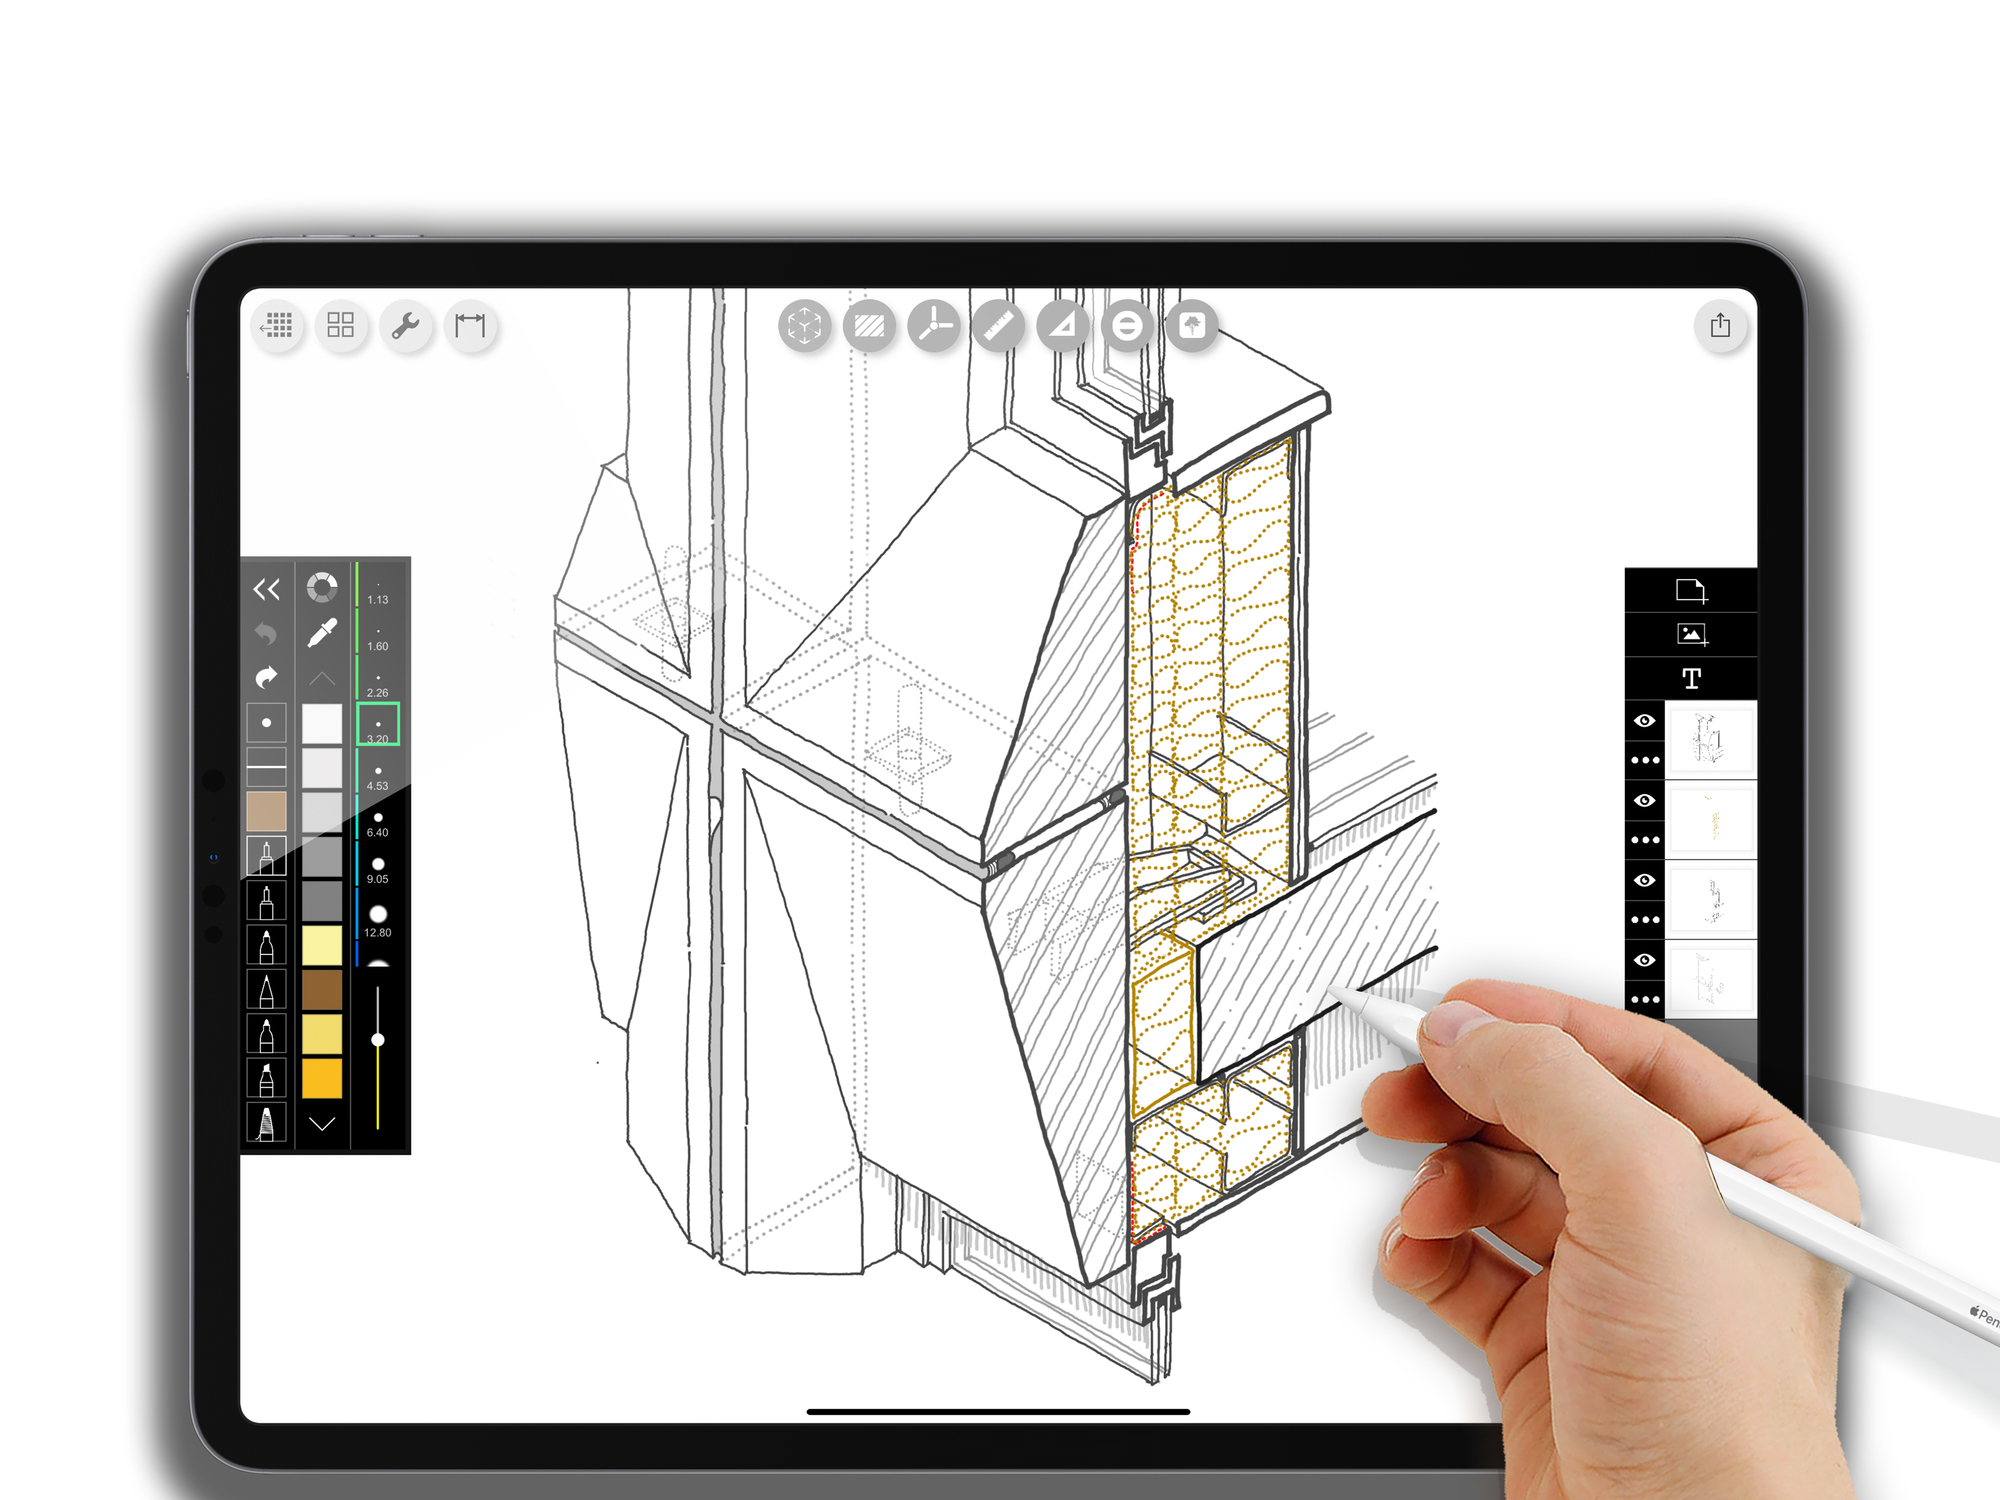 Architects And The New IPadPro: Should You Buy One